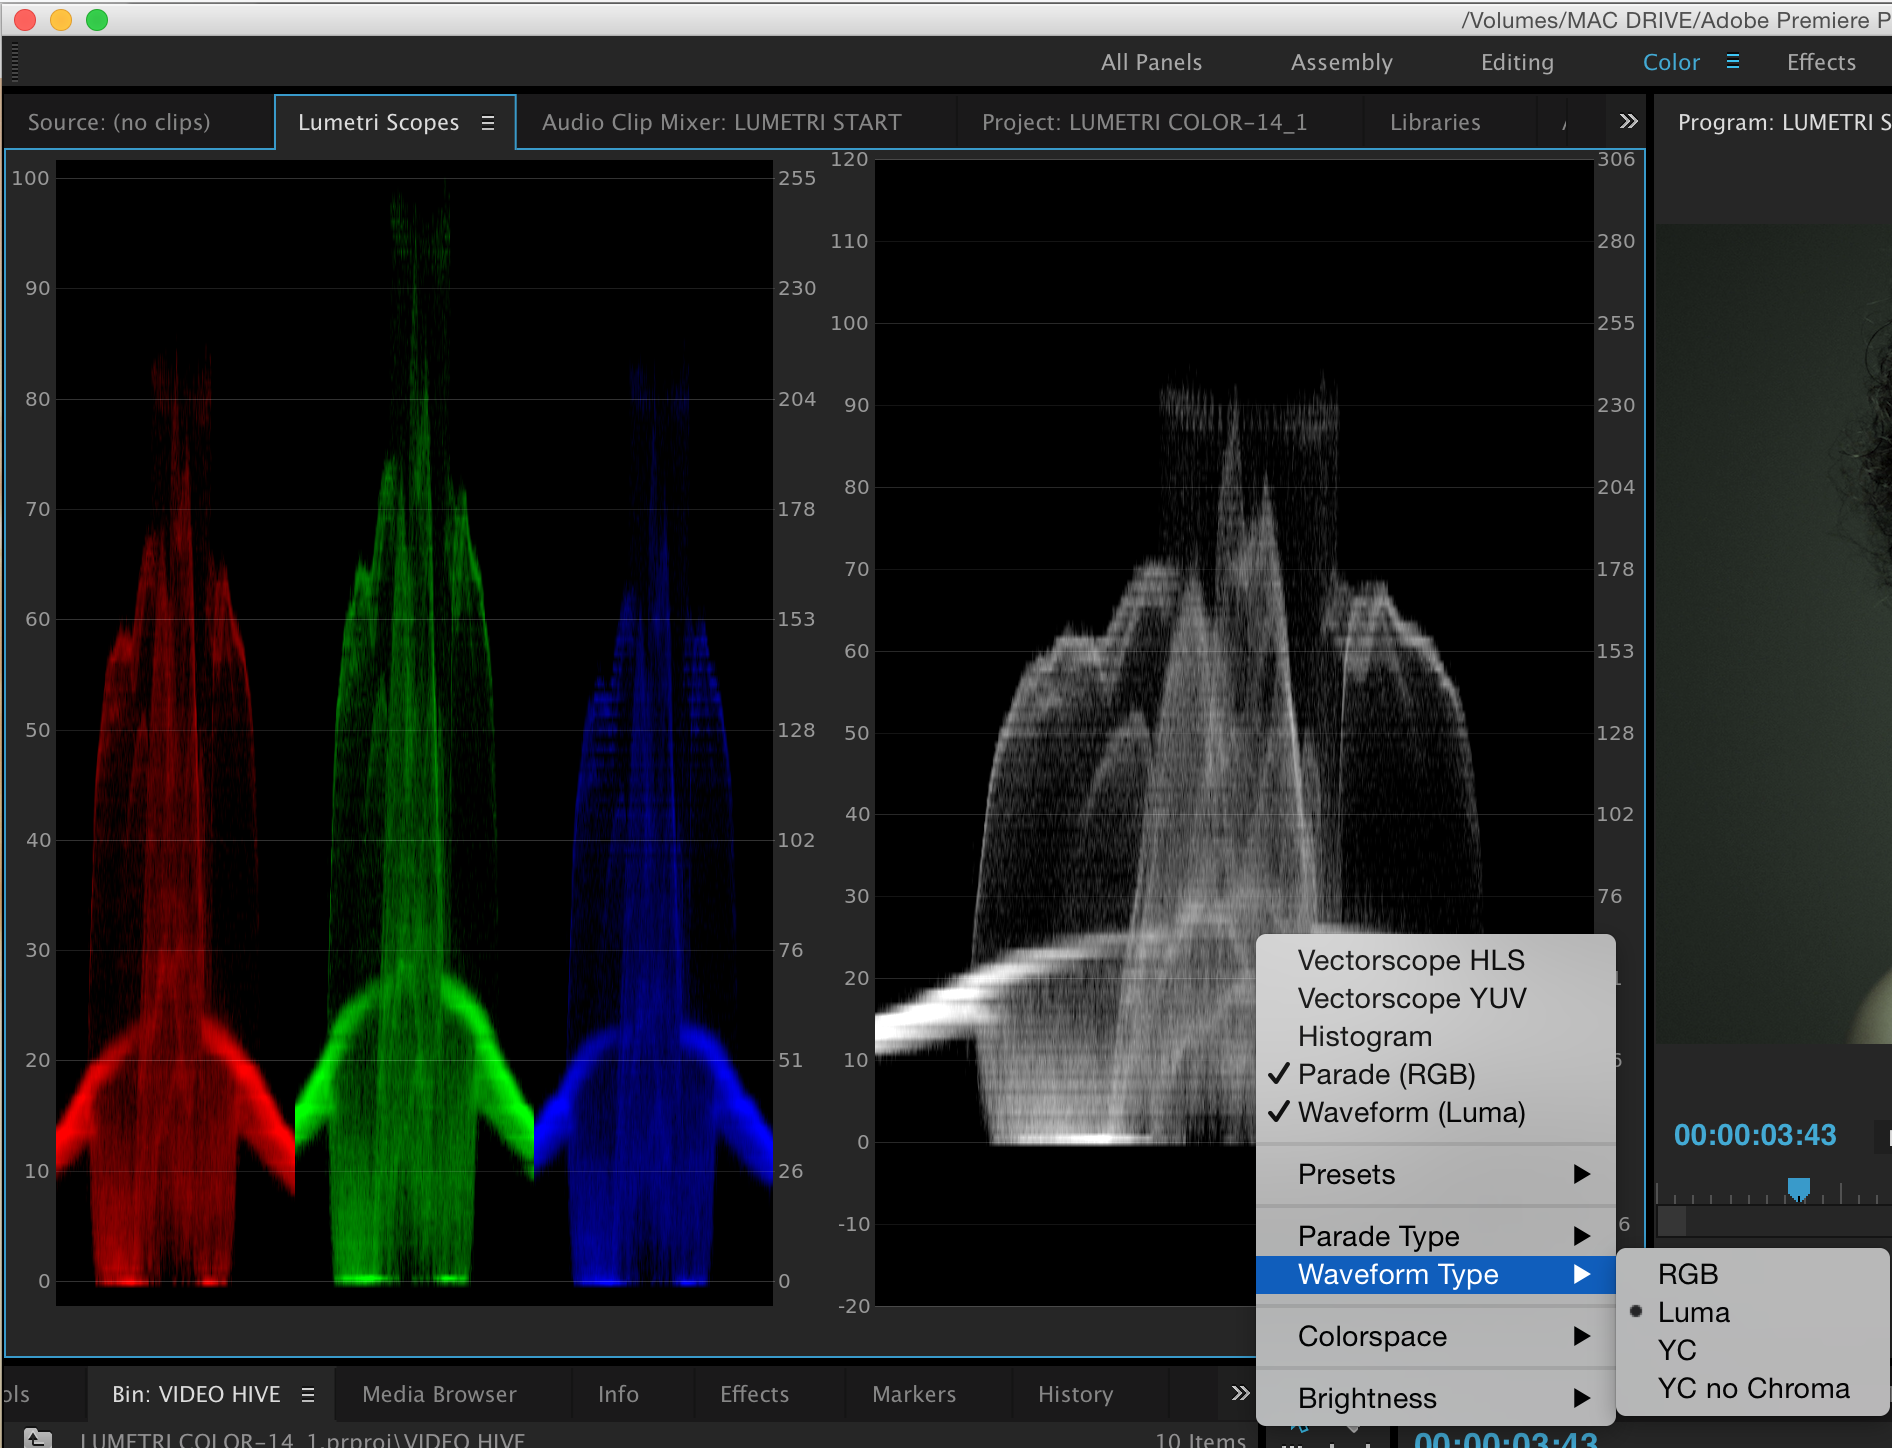 Changing waveform scopes type on right to Luma by ctrl-clicking on scope.